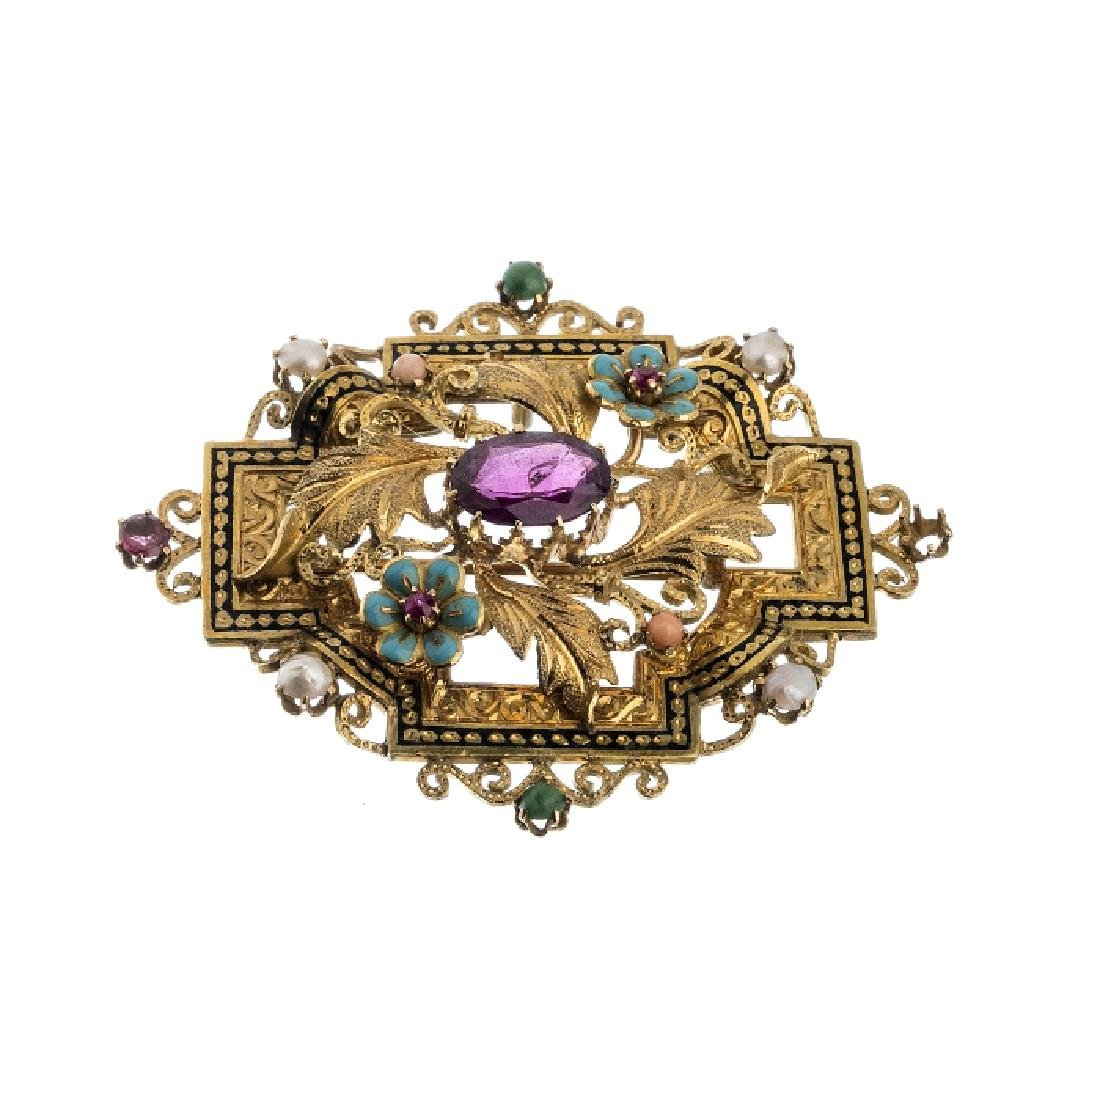 Gold pin with fine stones